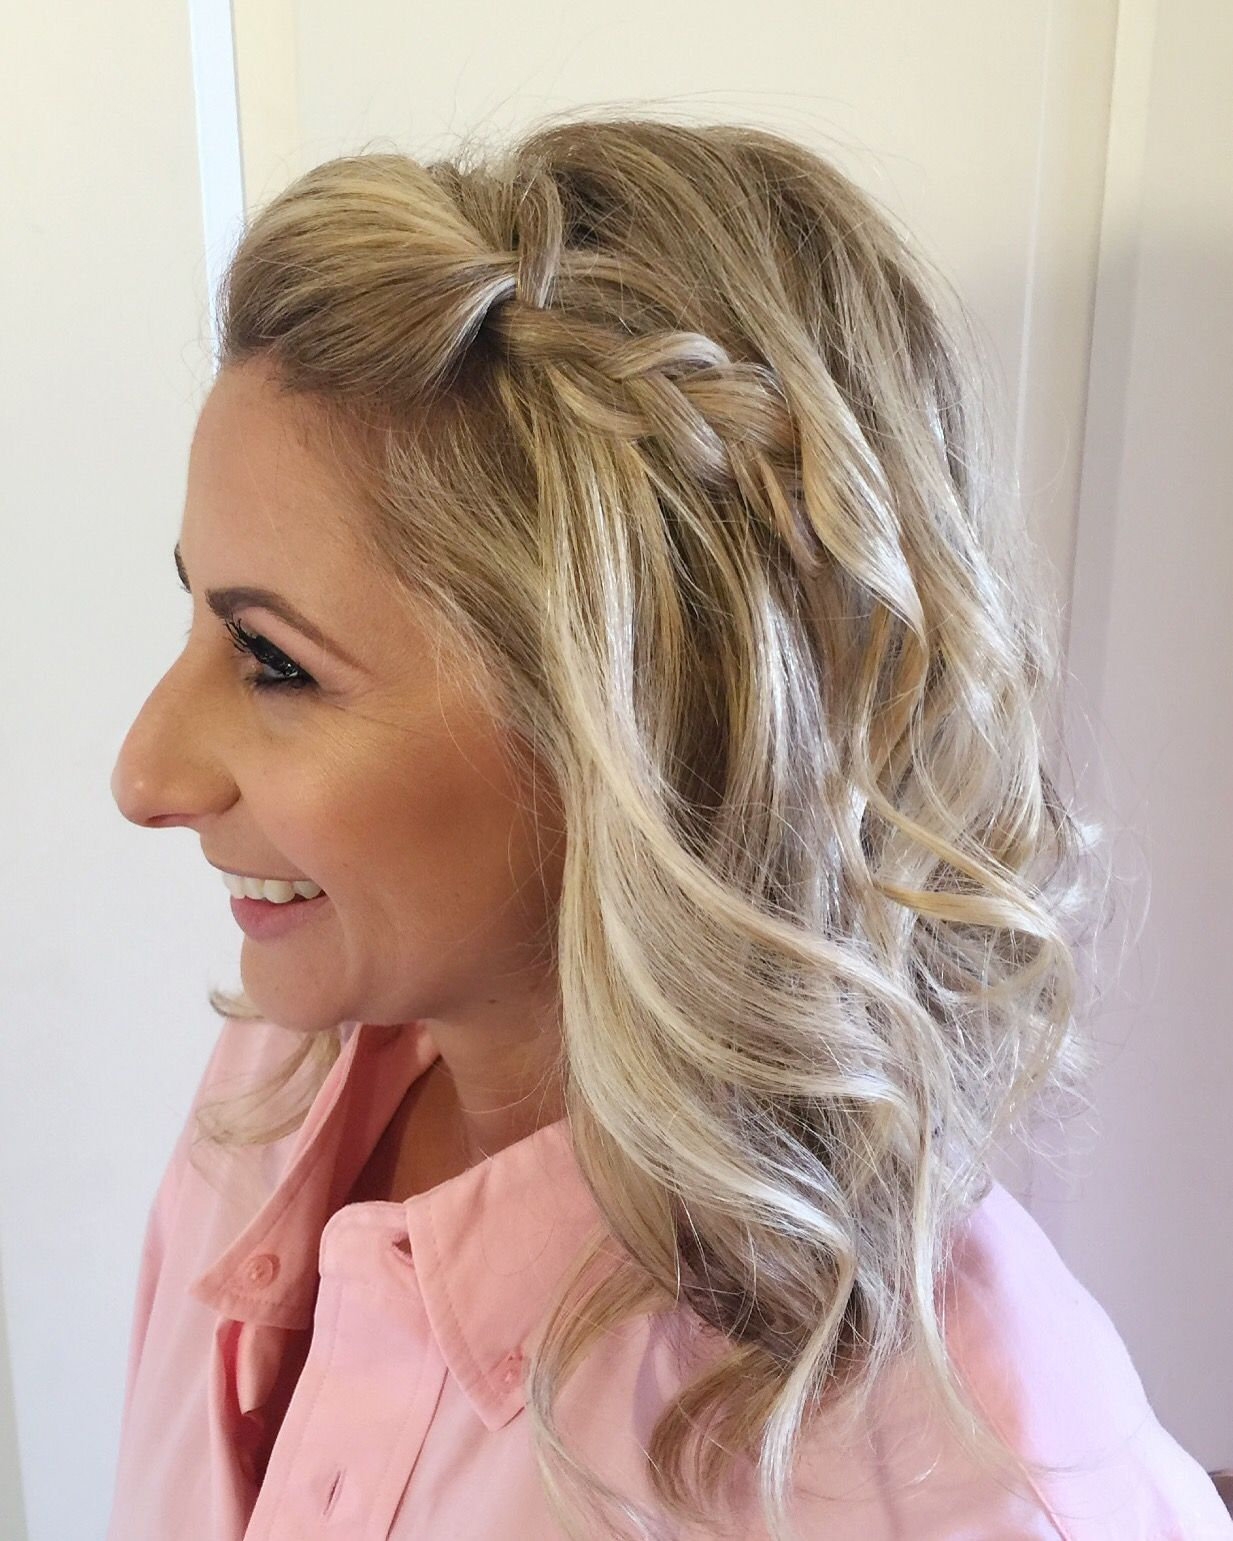 Bridesmaid Braid A Simple Dutch Side Braid With Volume And Curls To